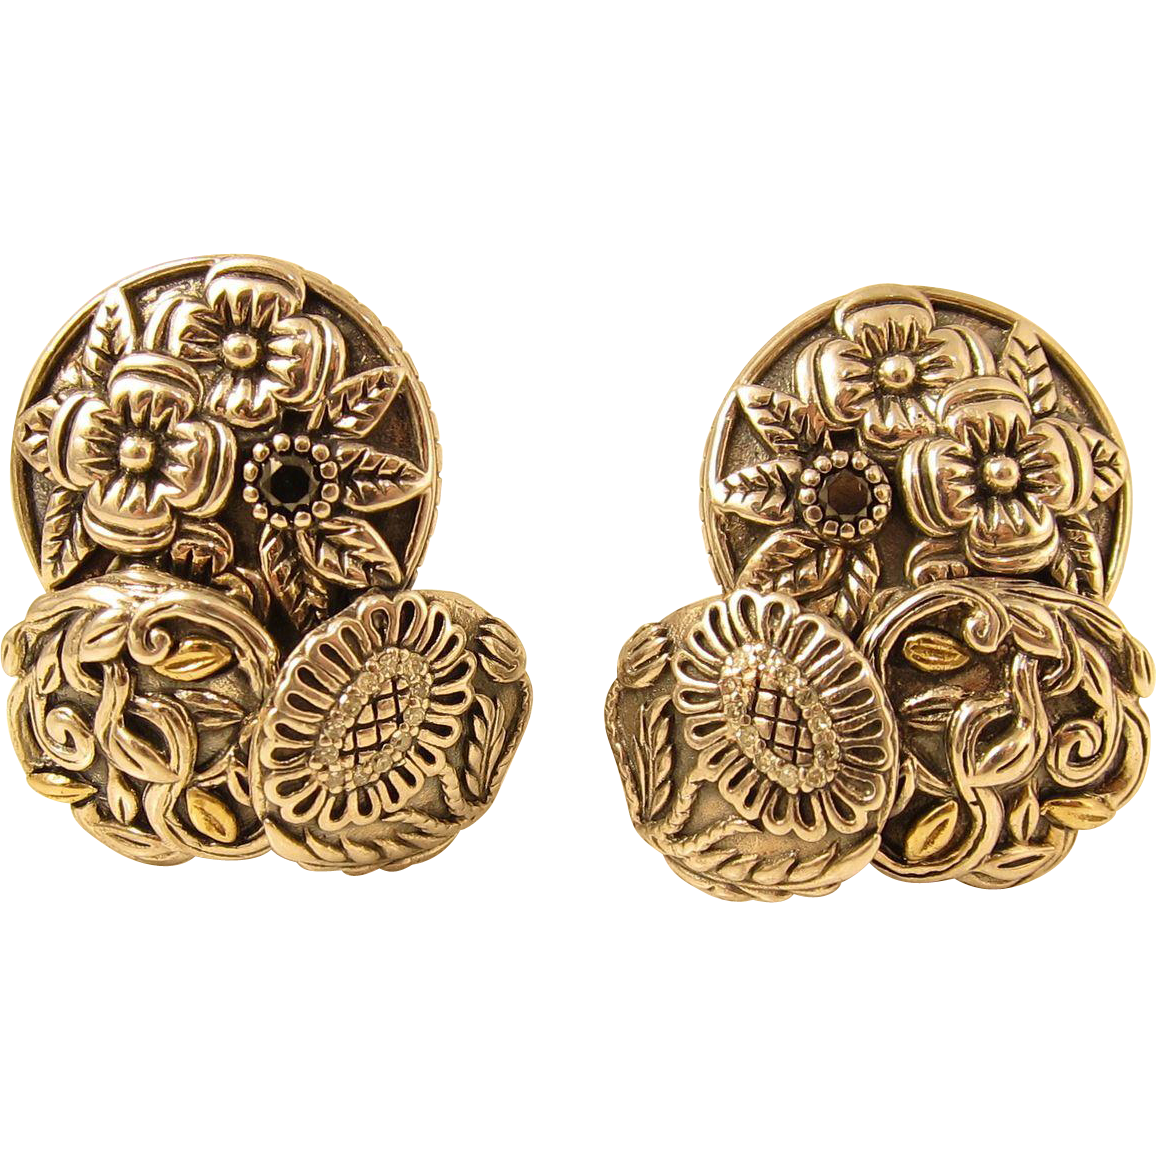 Beautiful Sterling Silver & 14k Gold Diamonds Clip On Earrings by Stephen Dweck 1990s